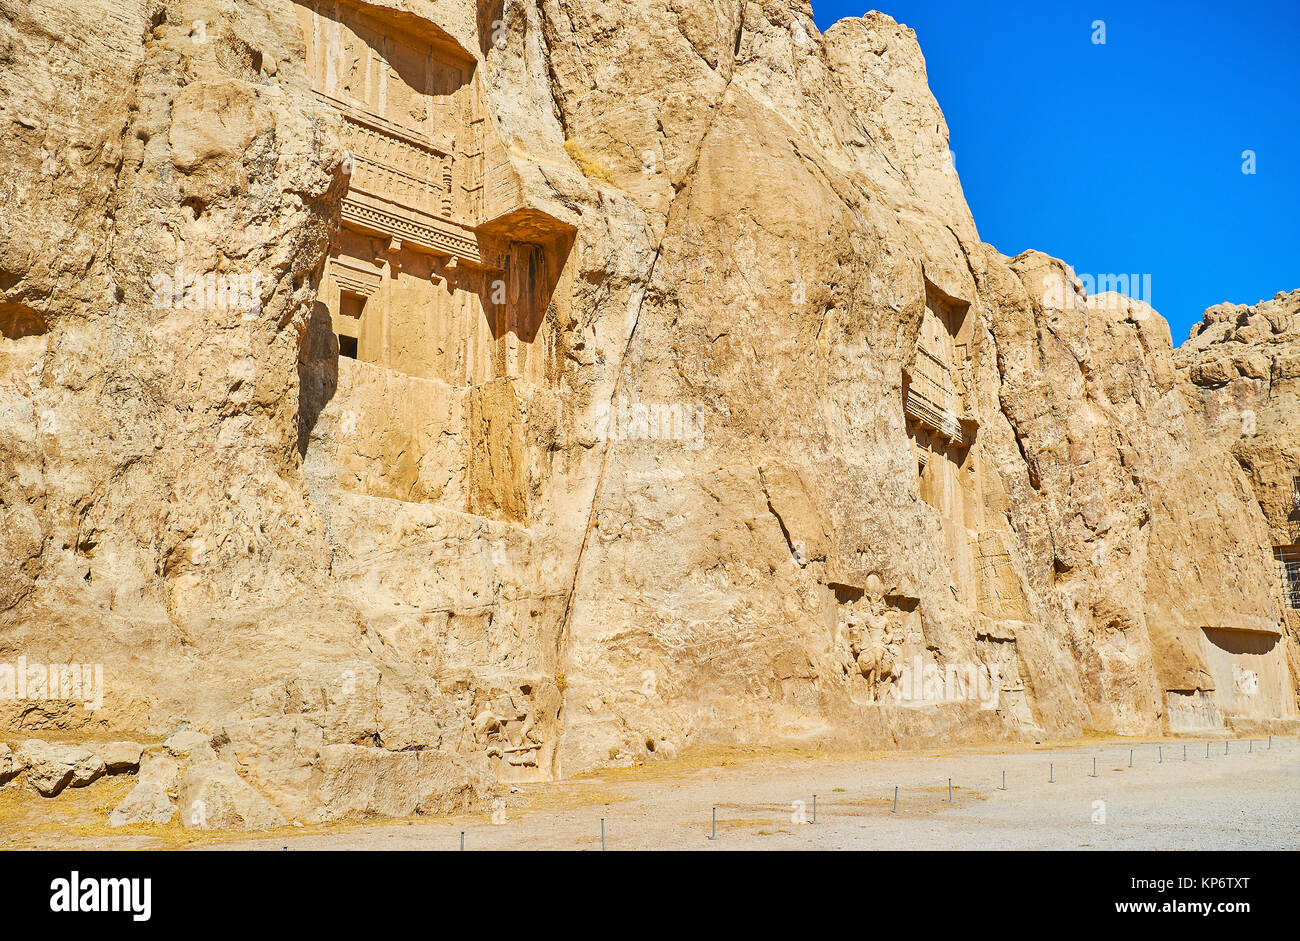 The massive rock with carved mausoleums in Naqsh-e Rustam Necropolis, Iran. - Stock Image